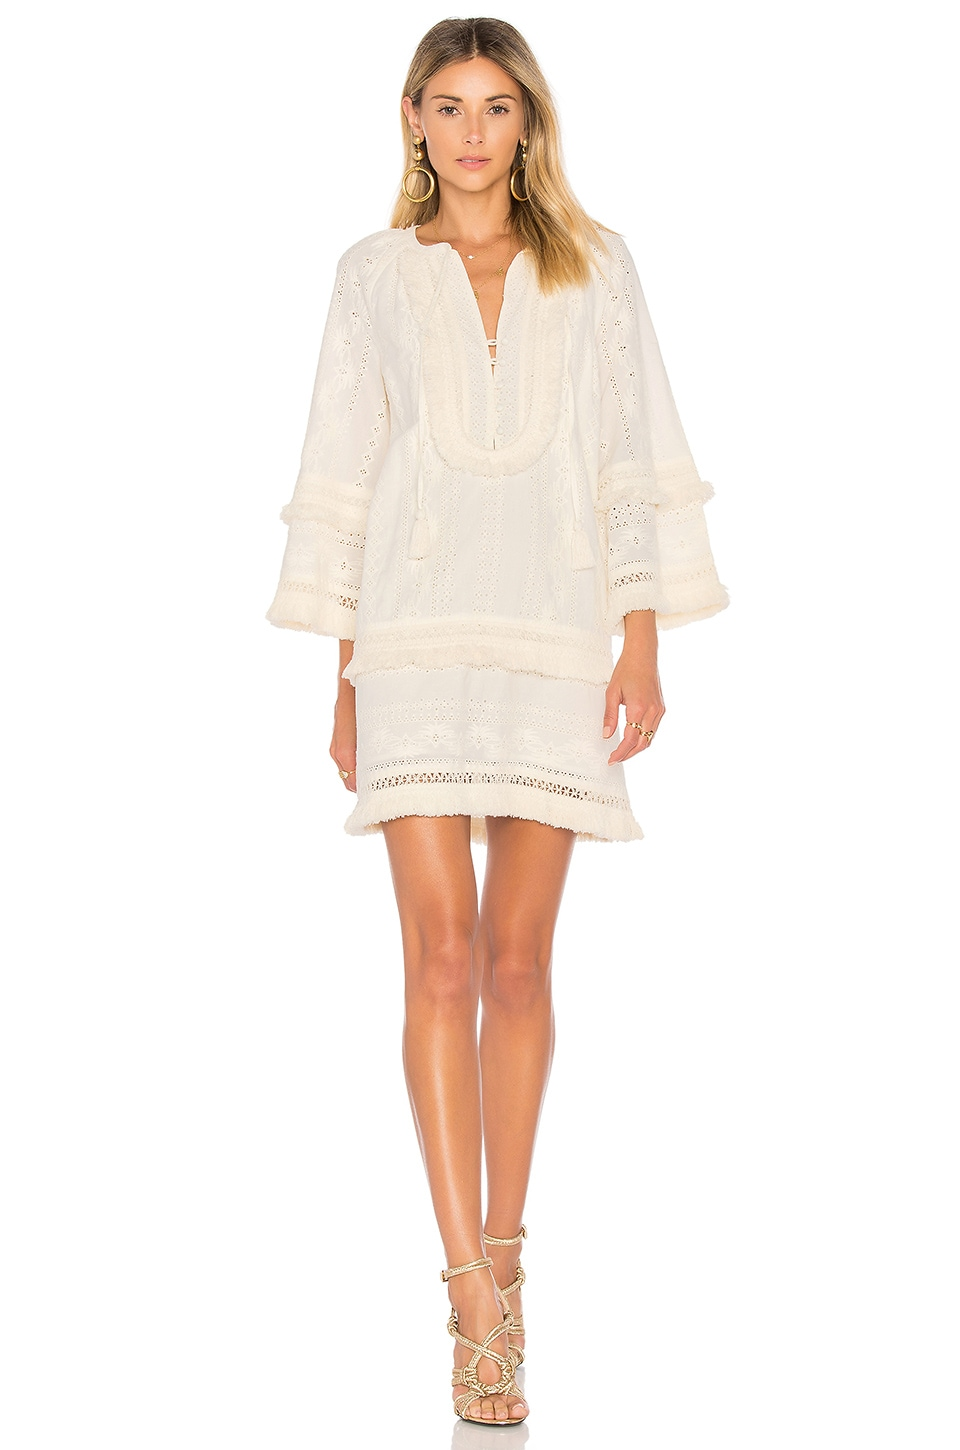 Abigail Dress by Rachel Zoe